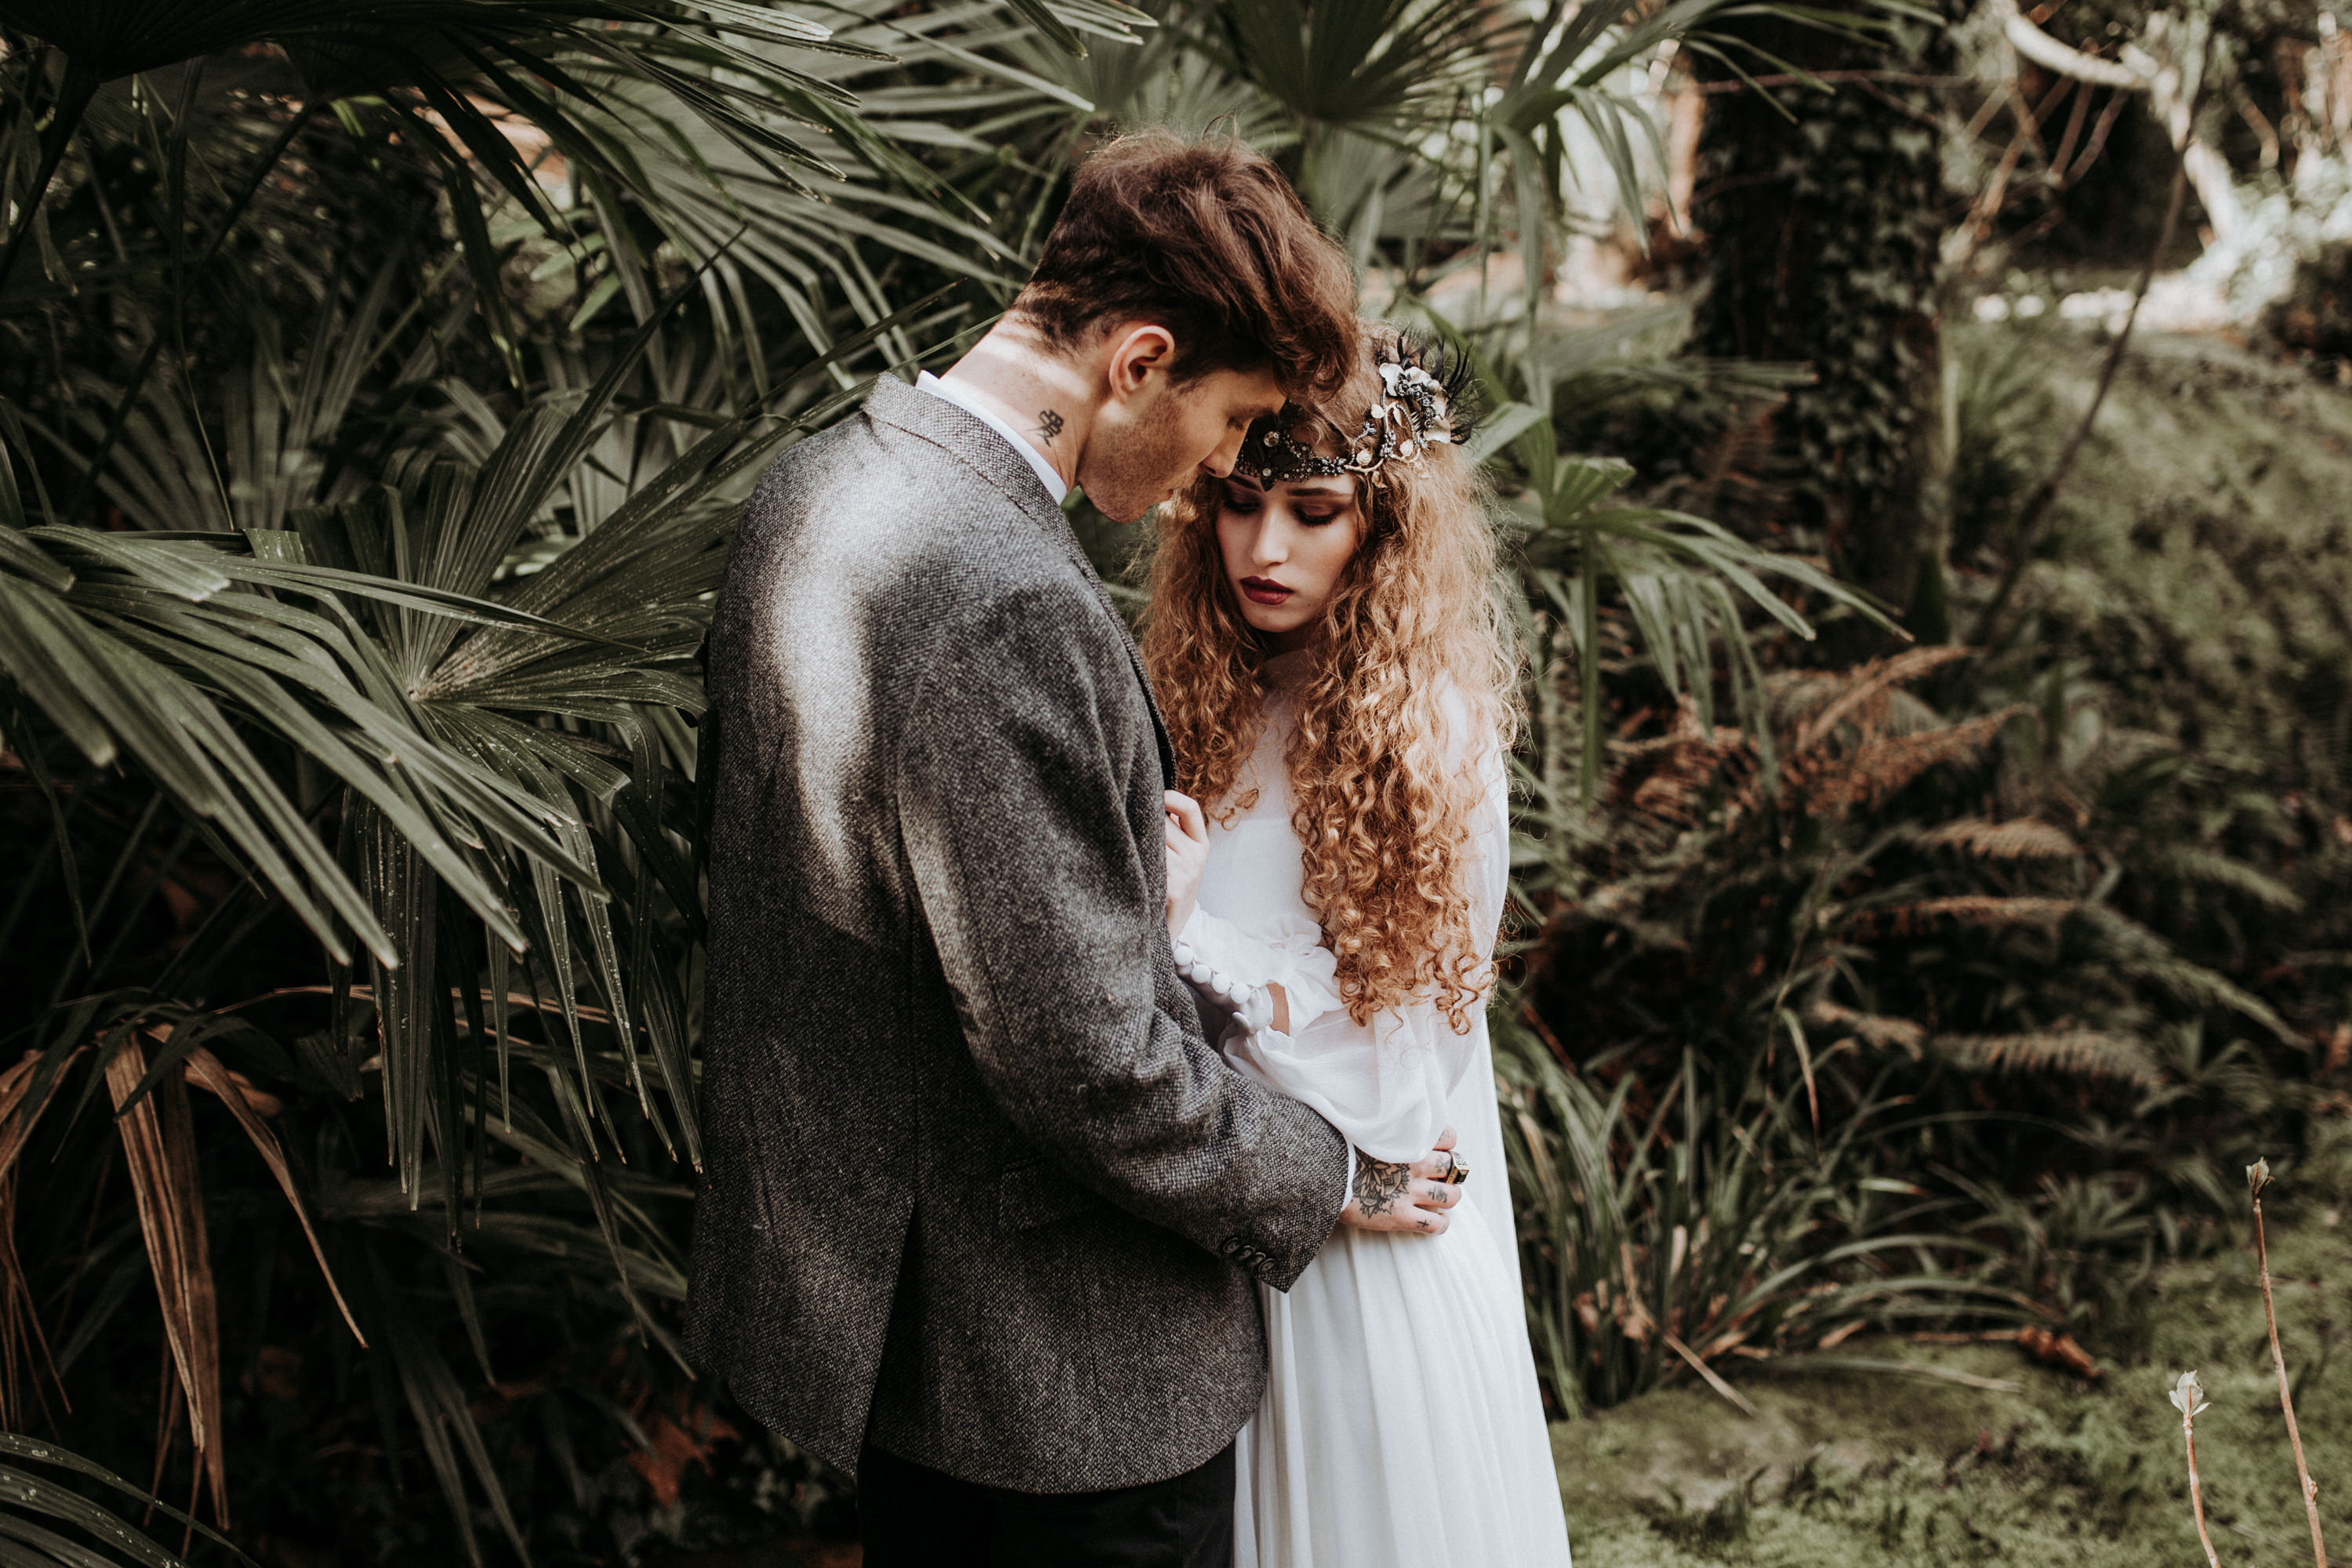 Wedding_Photographer_Barcelona_Mallorca_Daniela-Marquardt_Photography_CanaryIslands_Lanzarote_Iceland_Tuskany_Santorini_Portugal_Schweiz_Austria_Bayern_Elopement_Hochzeitsfotograf38